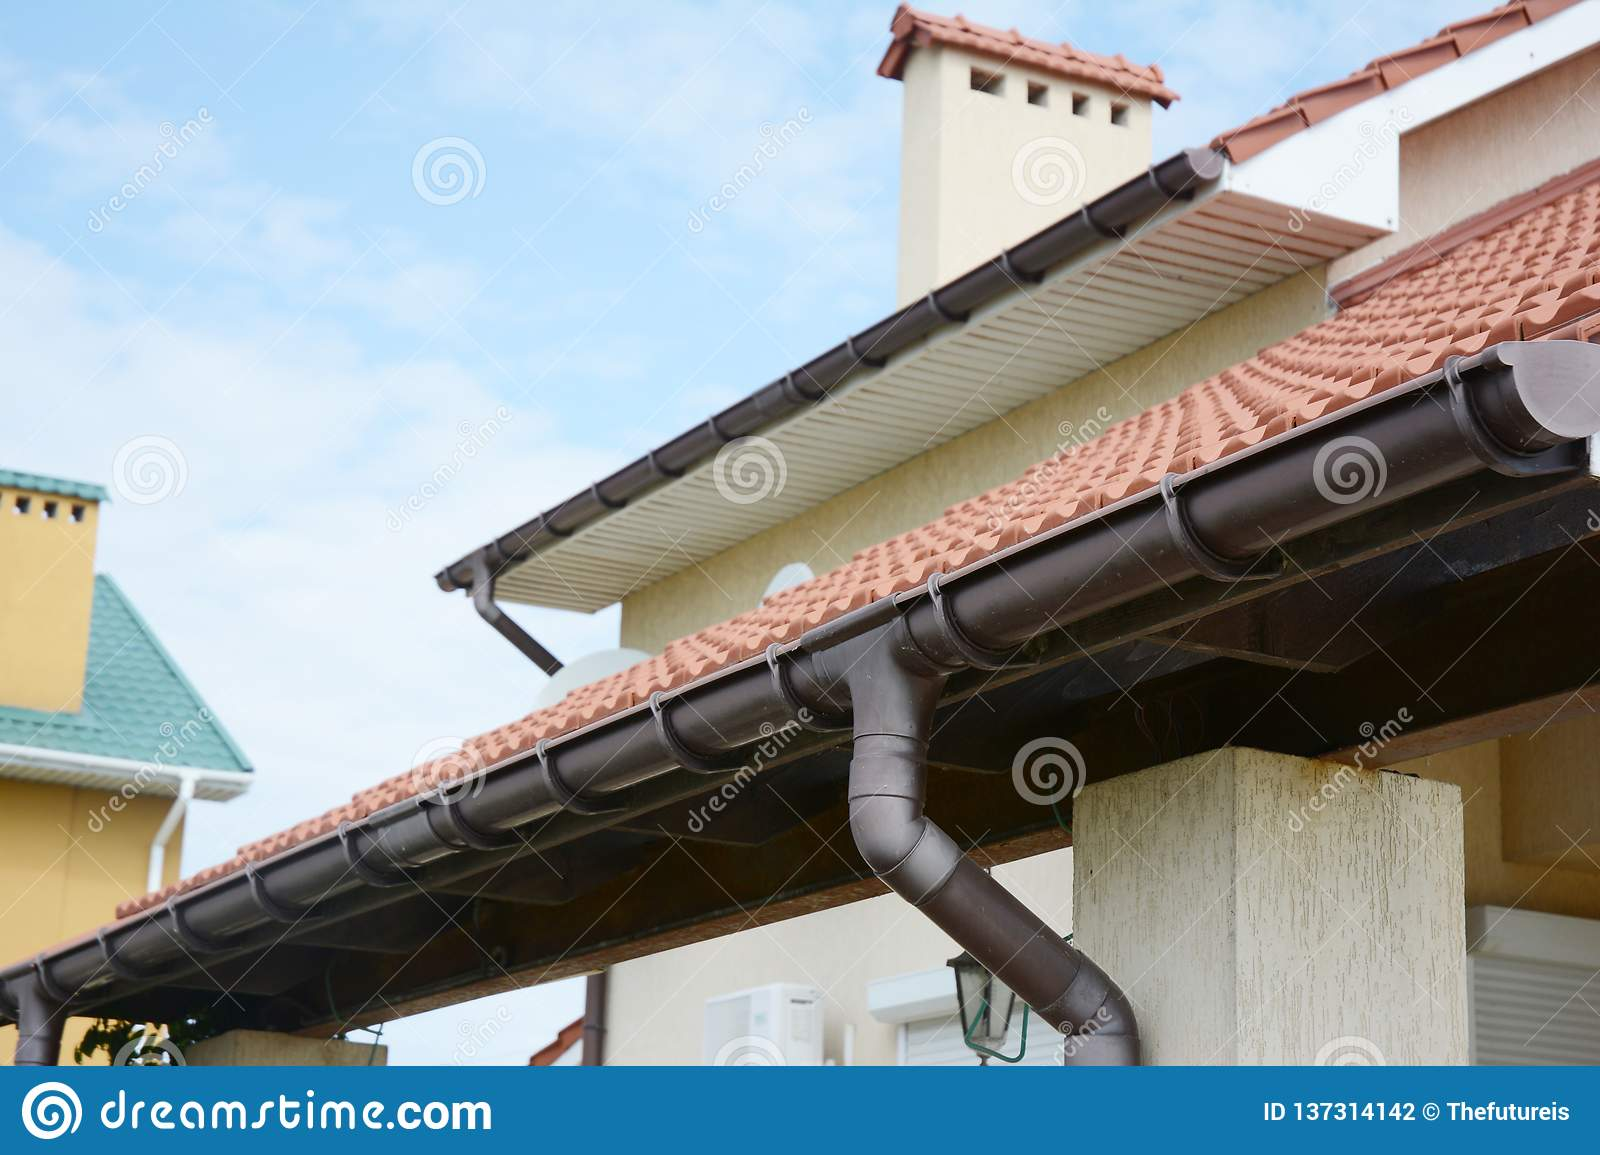 Guttering. Roof gutter pipeline sysem. House rain gutter with holders and downspout pipe